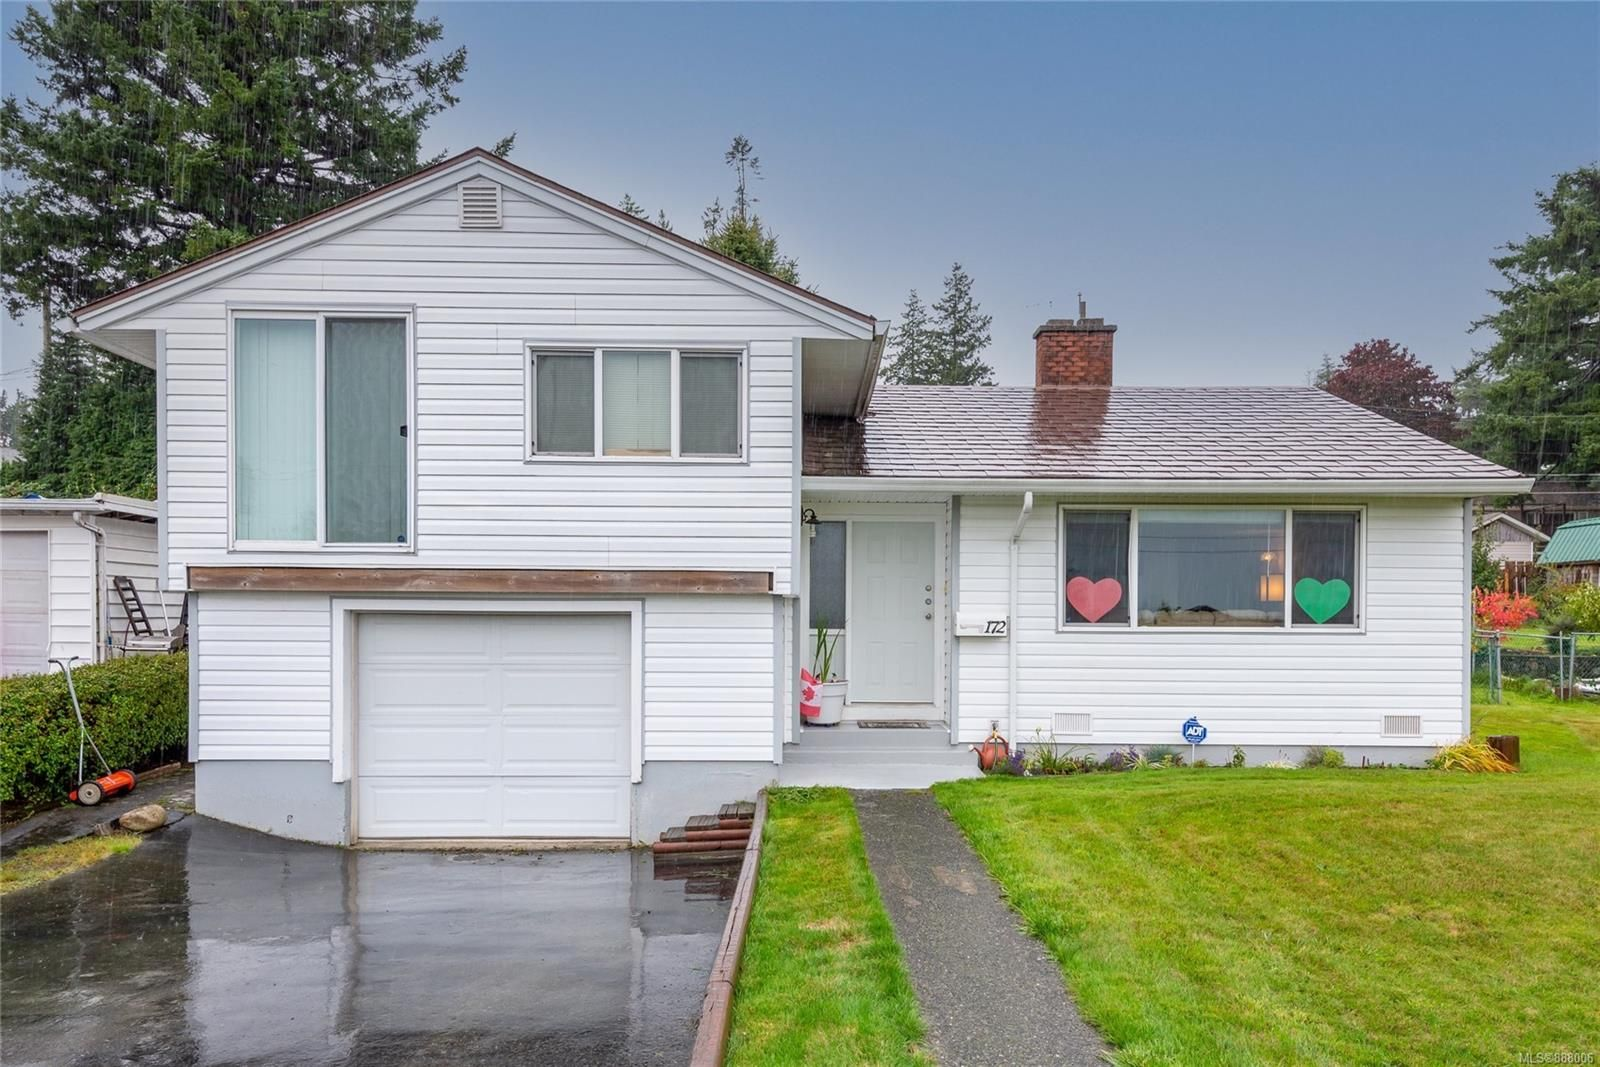 Main Photo: 172 MCLEAN St in : CR Campbell River Central House for sale (Campbell River)  : MLS®# 888006